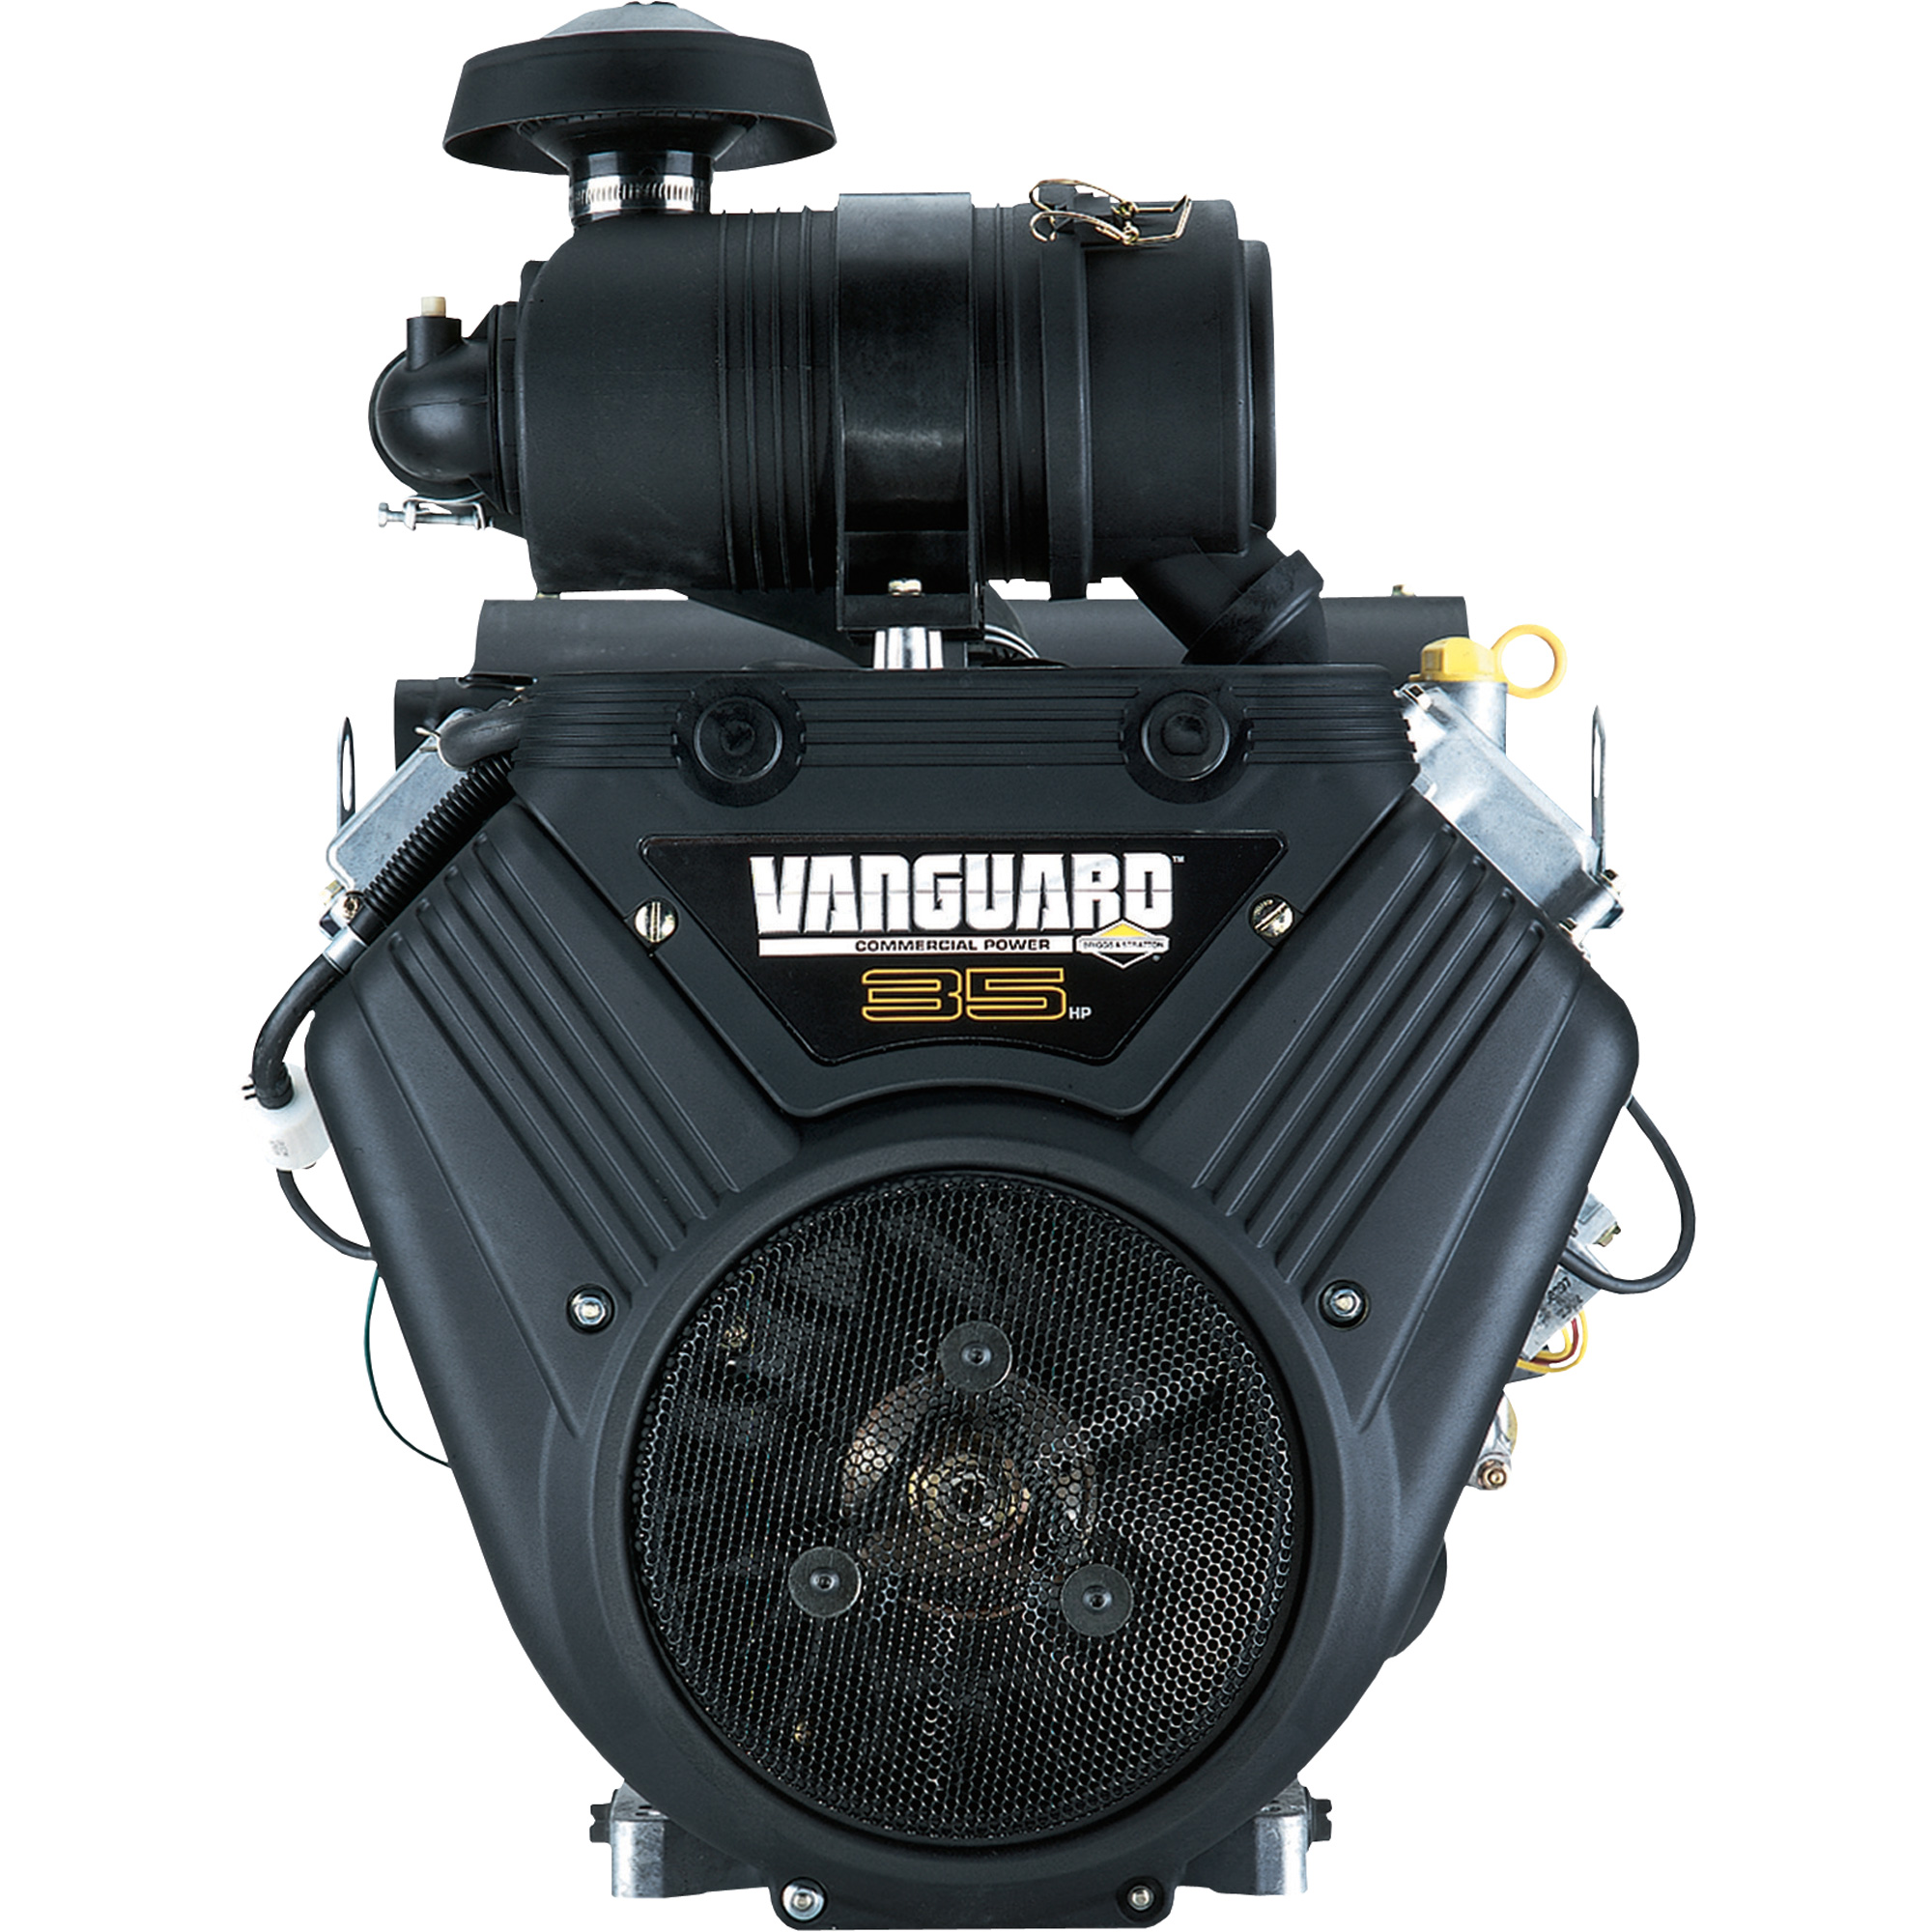 Briggs Stratton Vanguard Engine Diagram Wiring Master Blogs 8 Hp Horizontal V Twin Big Block Ohv